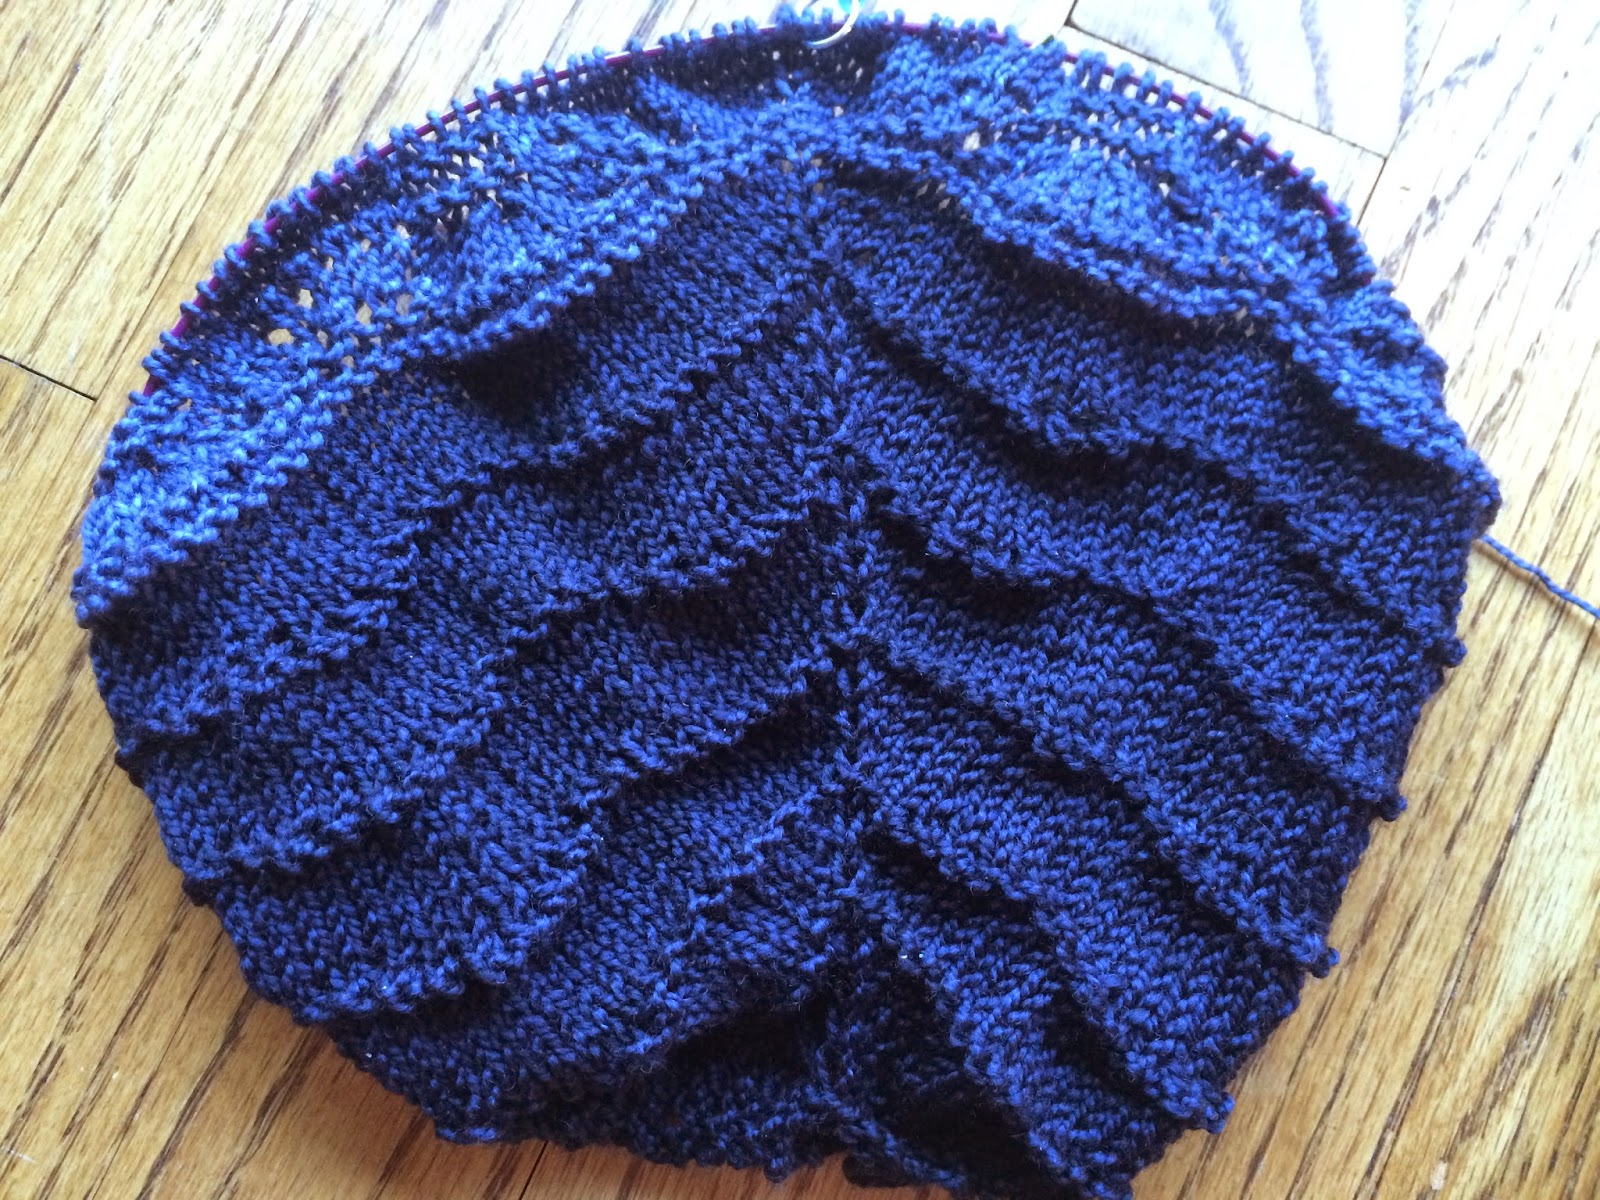 Brush Creek Cowlette from The Knitting Nest - Day 2 2